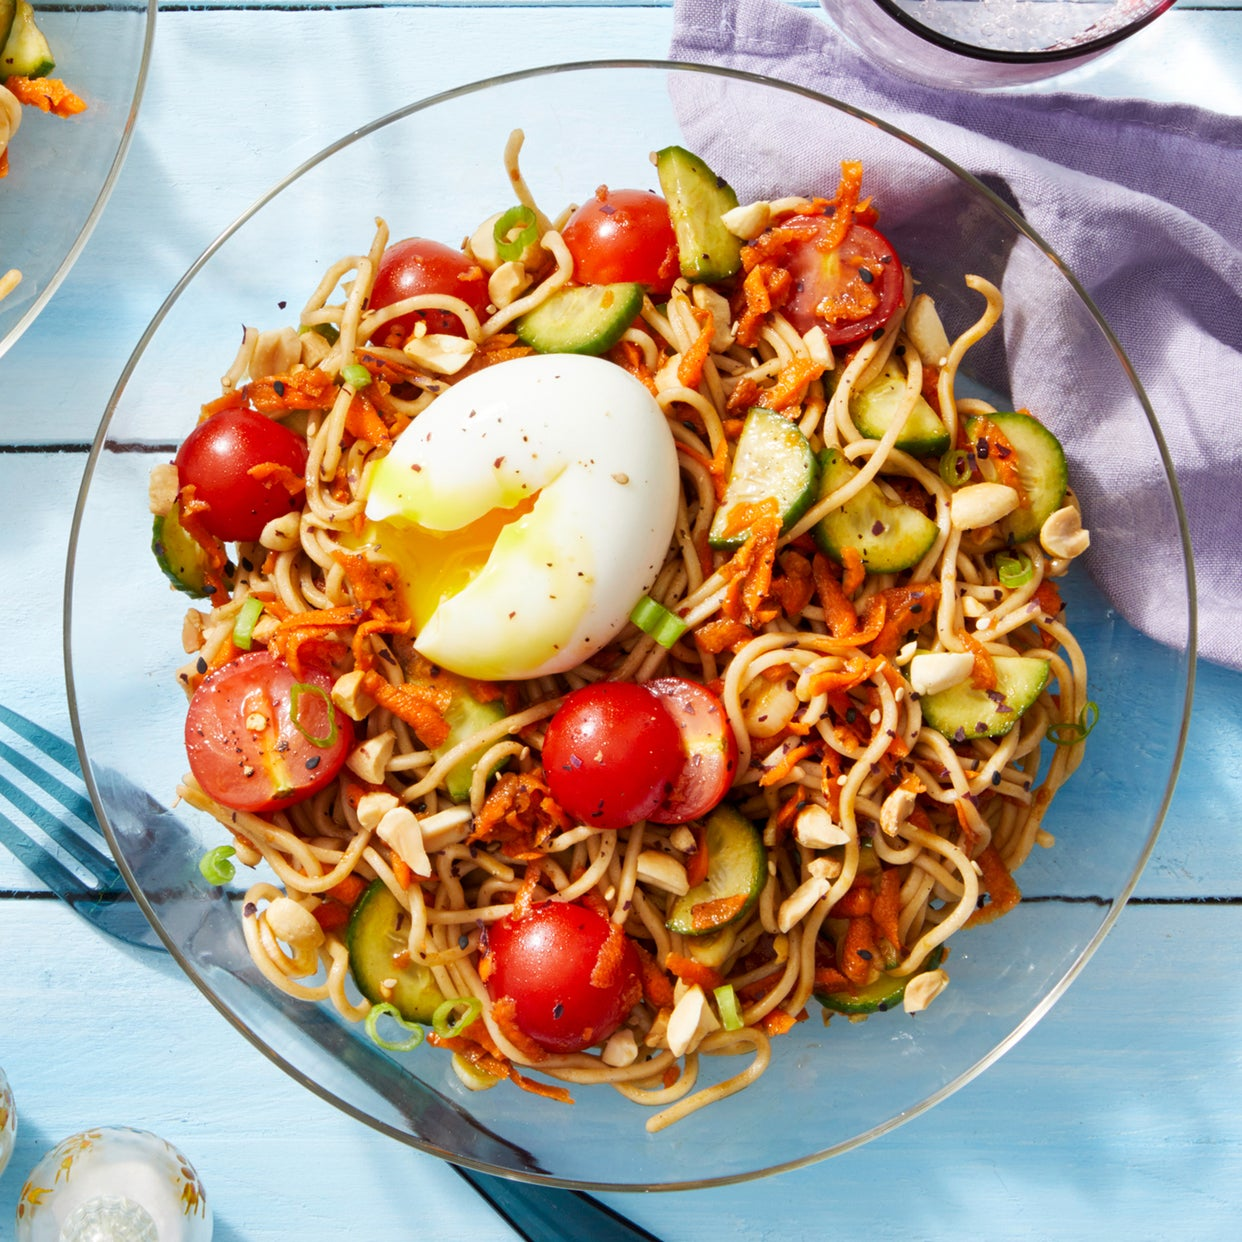 Marinated Vegetable & Soba Noodle Salad with Soft-Boiled Eggs & Peanuts